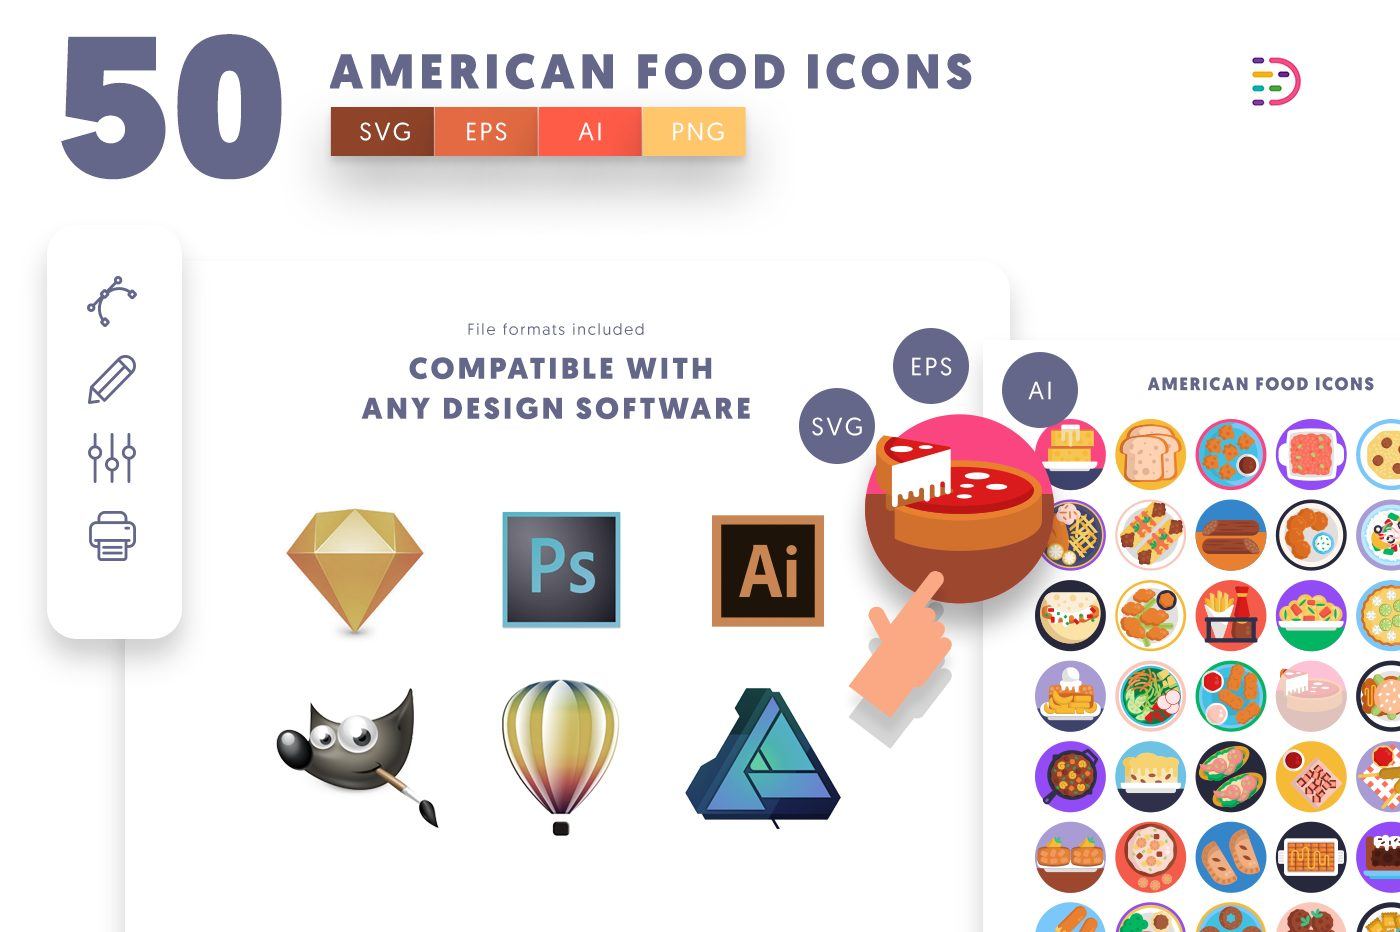 full vector 50 American Food Icons EPS, SVG, PNG